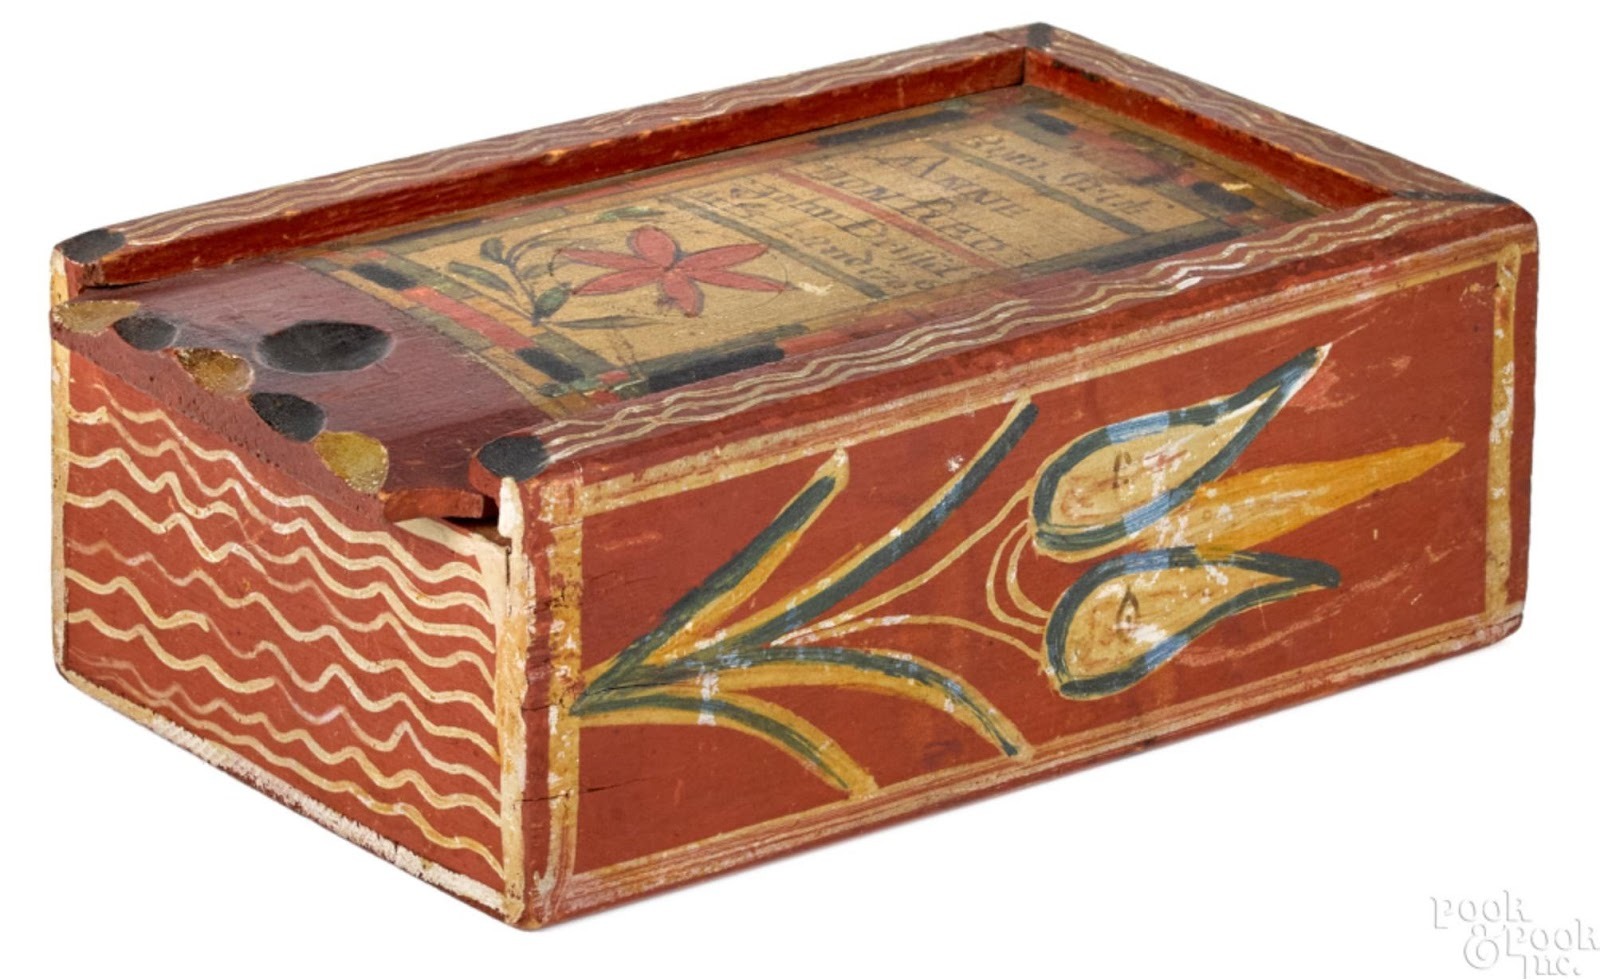 Pine slide lid box by John Drissel sold for $137,000. Image from Pook & Pook, Inc.